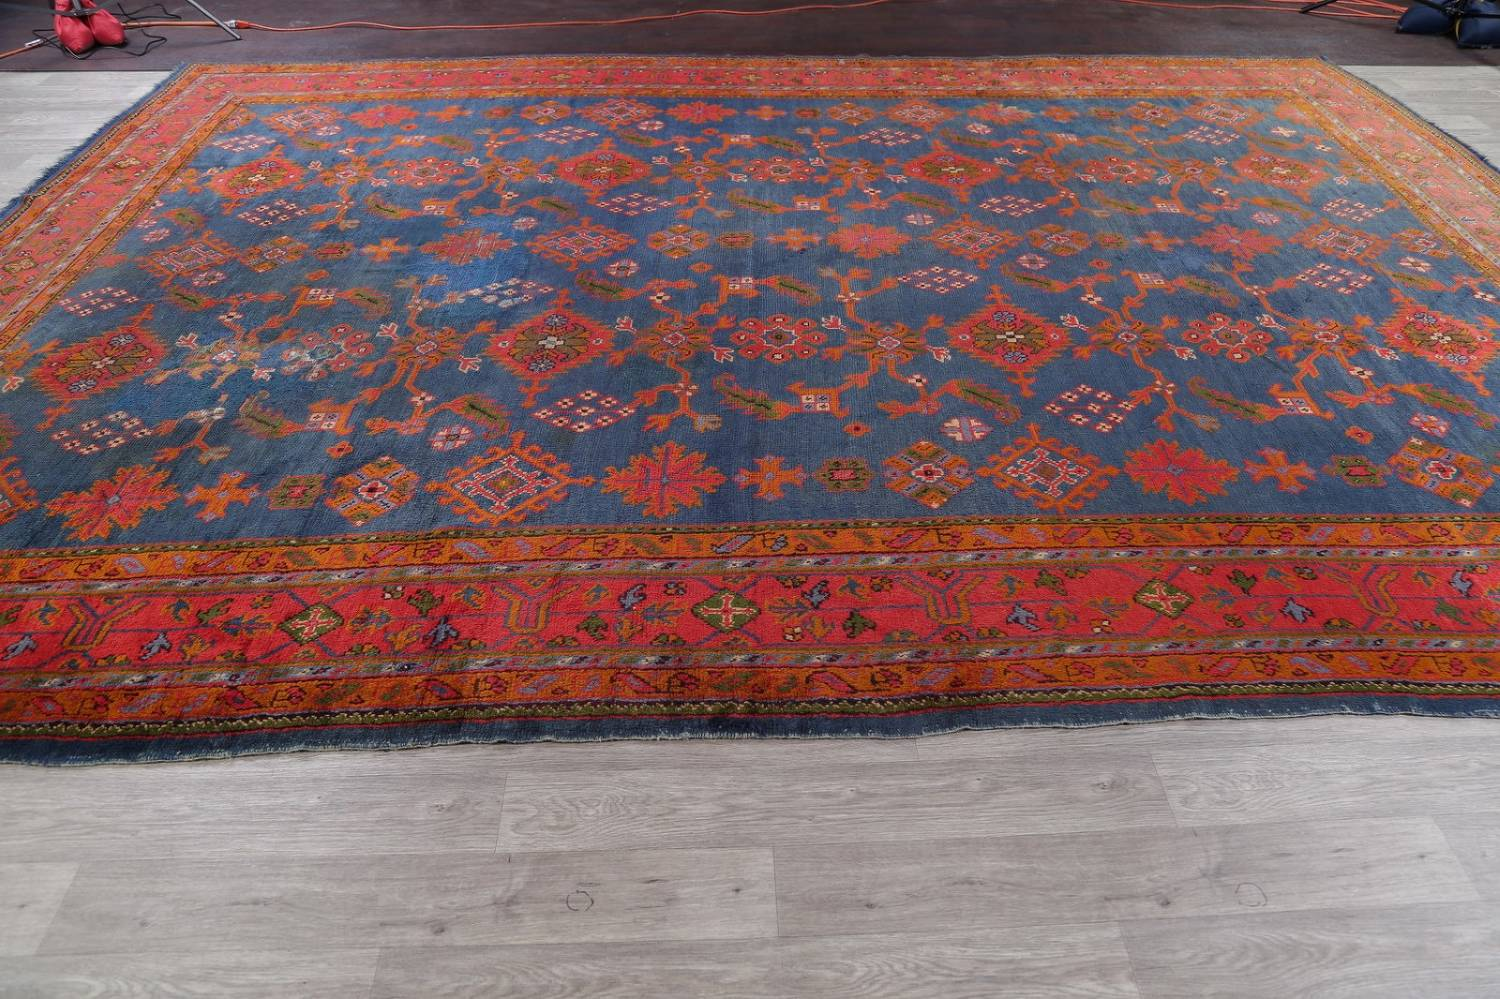 Antique Vegetable Dye Oushak Turkish Hand-Knotted Area Rug Wool 11x16 image 18